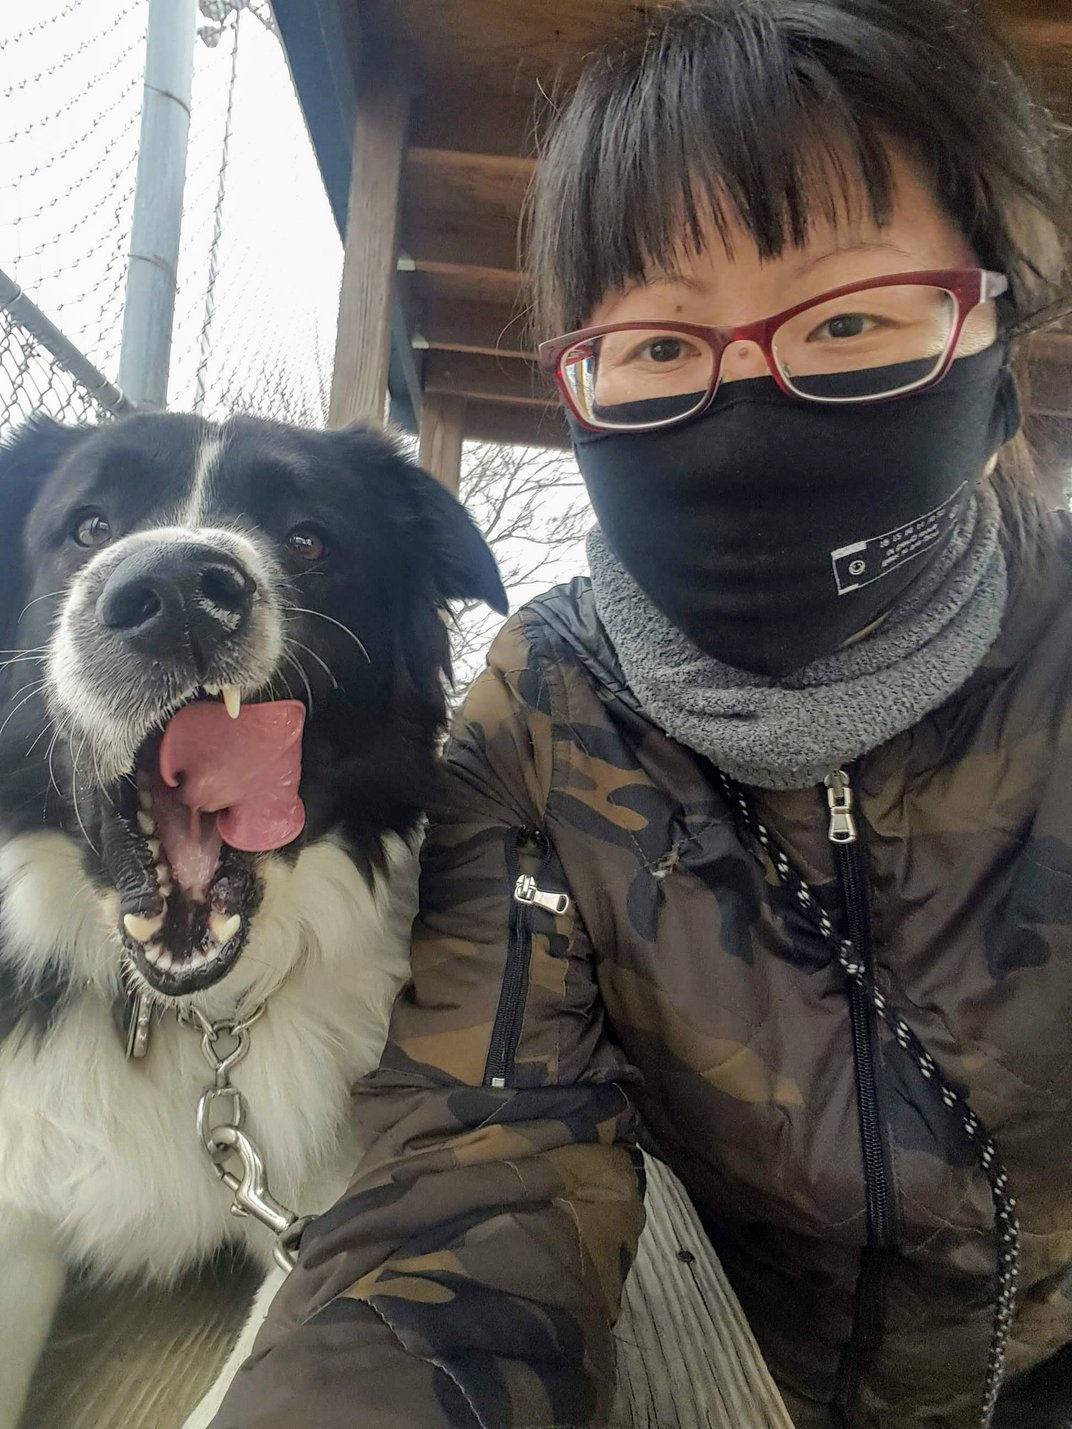 A masked person next to a dog licking its jowls.